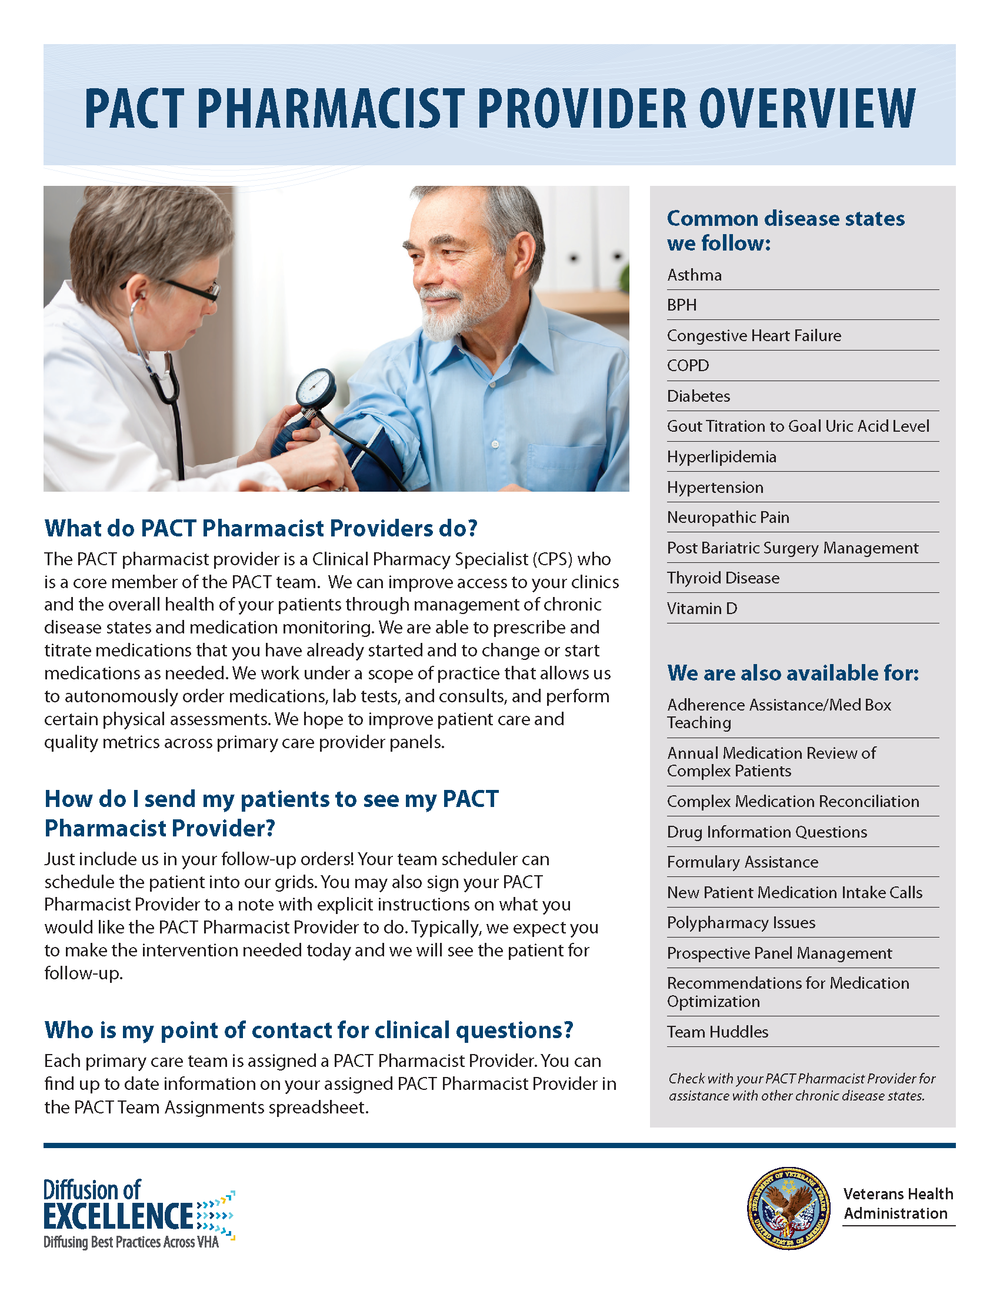 PACT Pharmacy Provider Overview.png